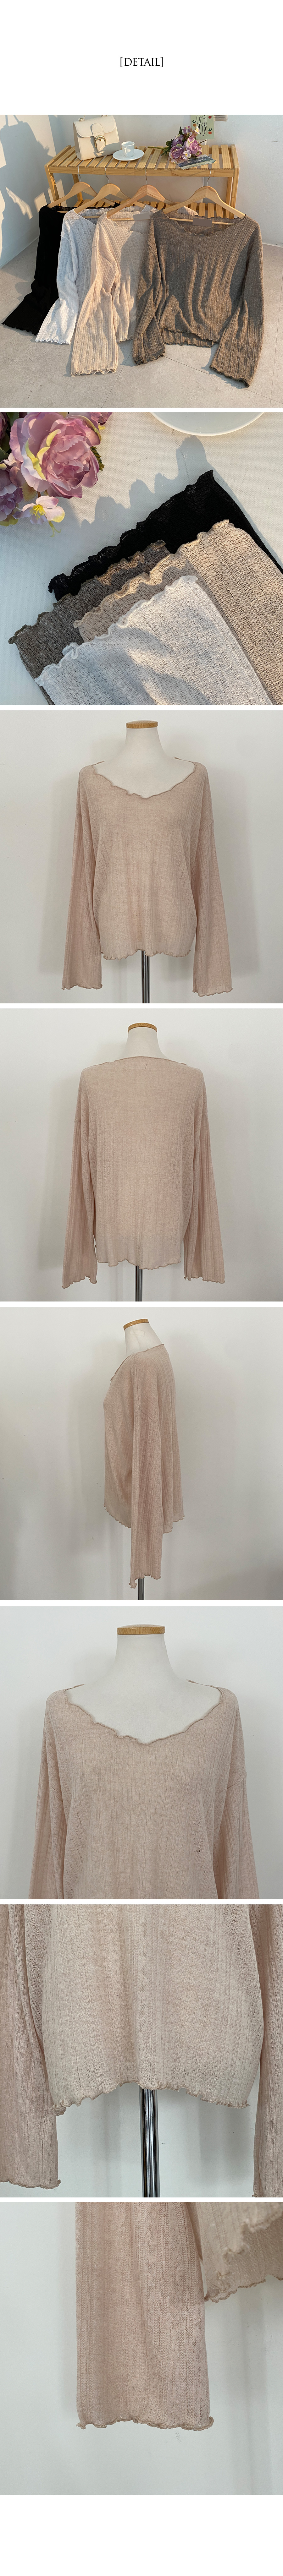 Natural Linen Jelly Knitwear